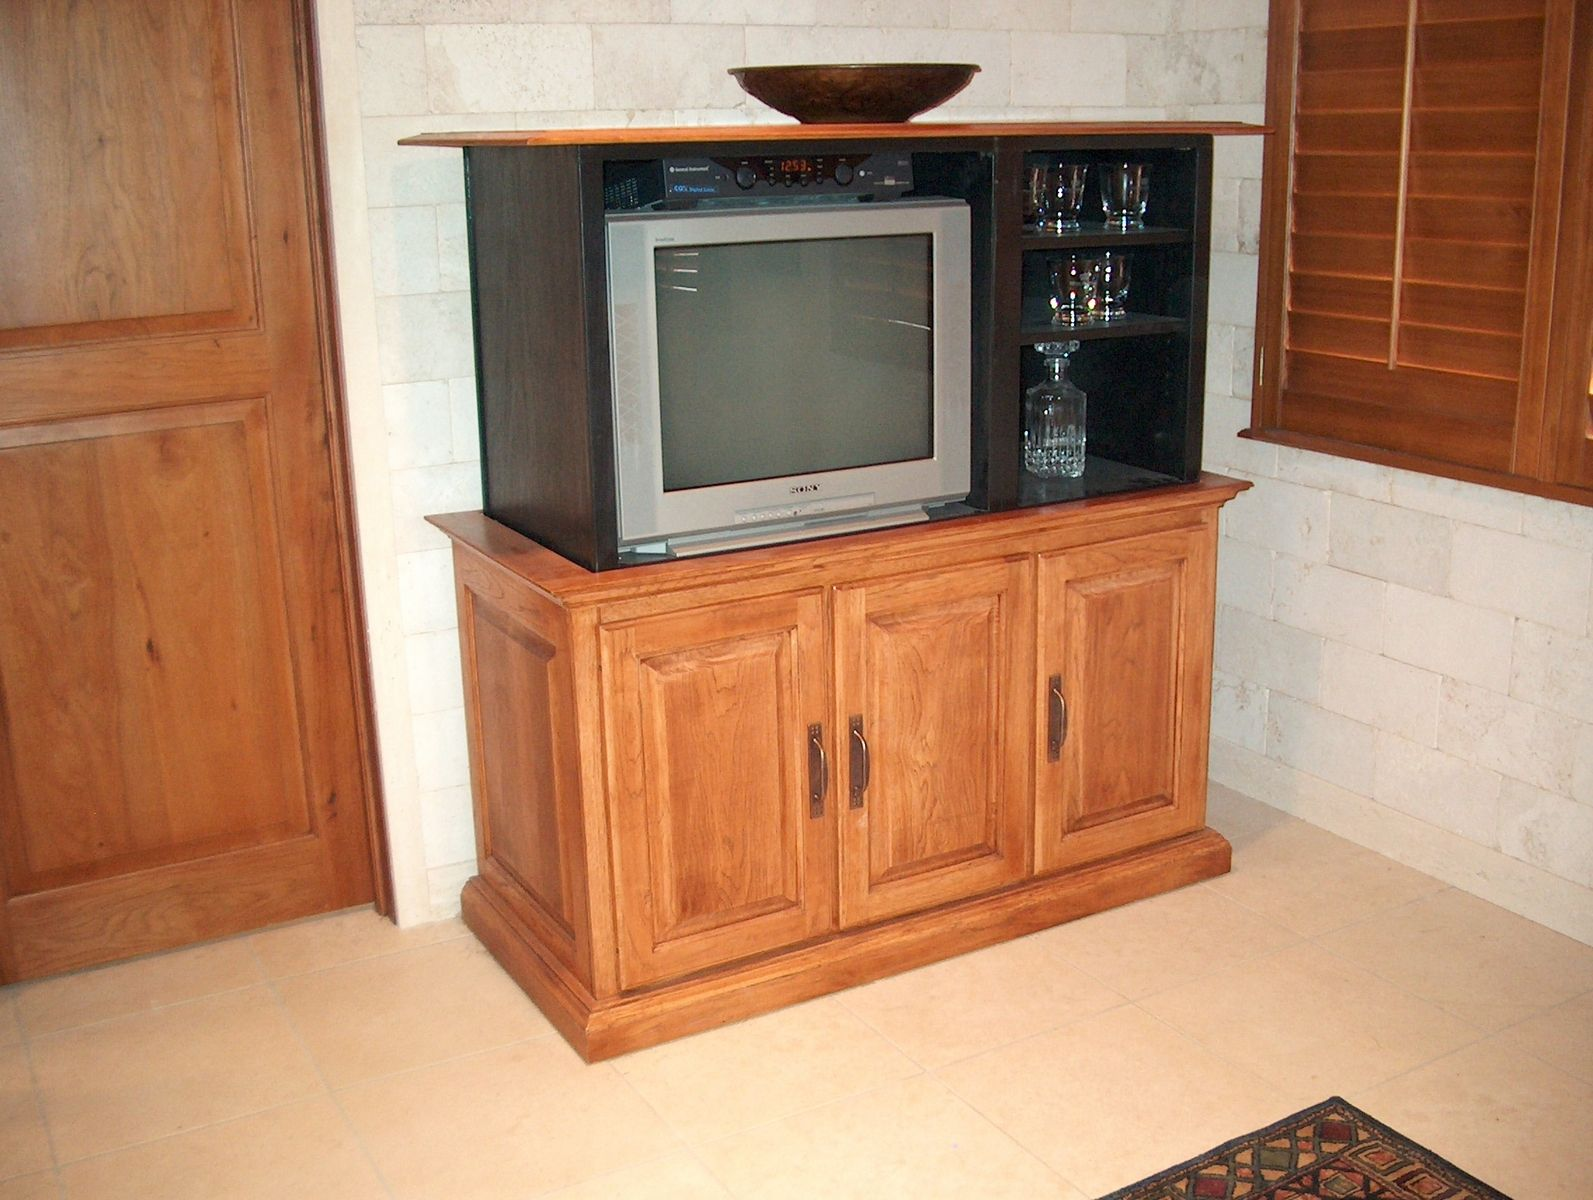 handmade cabinet with hidden bar and tv lift by jeffrey scott designs. Black Bedroom Furniture Sets. Home Design Ideas